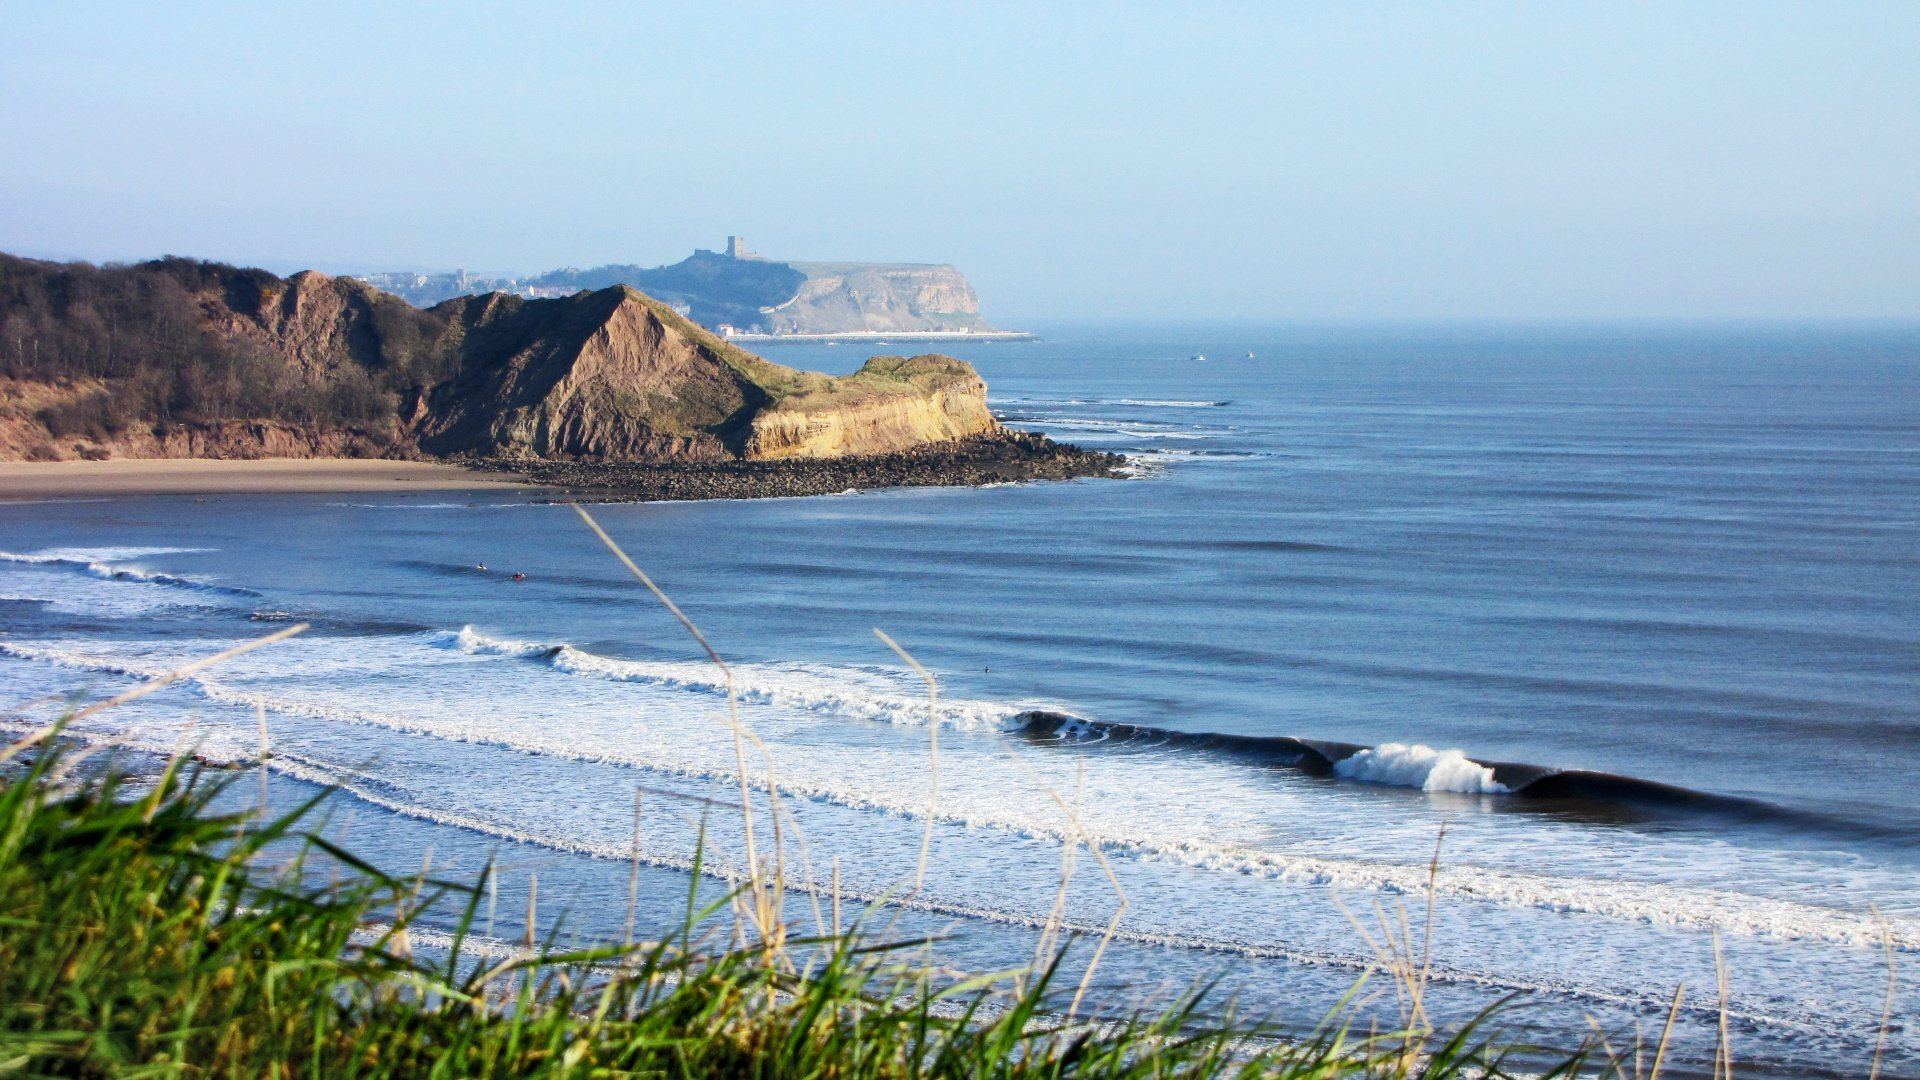 El Capitano's photo of Cayton Bay - Pumphouse